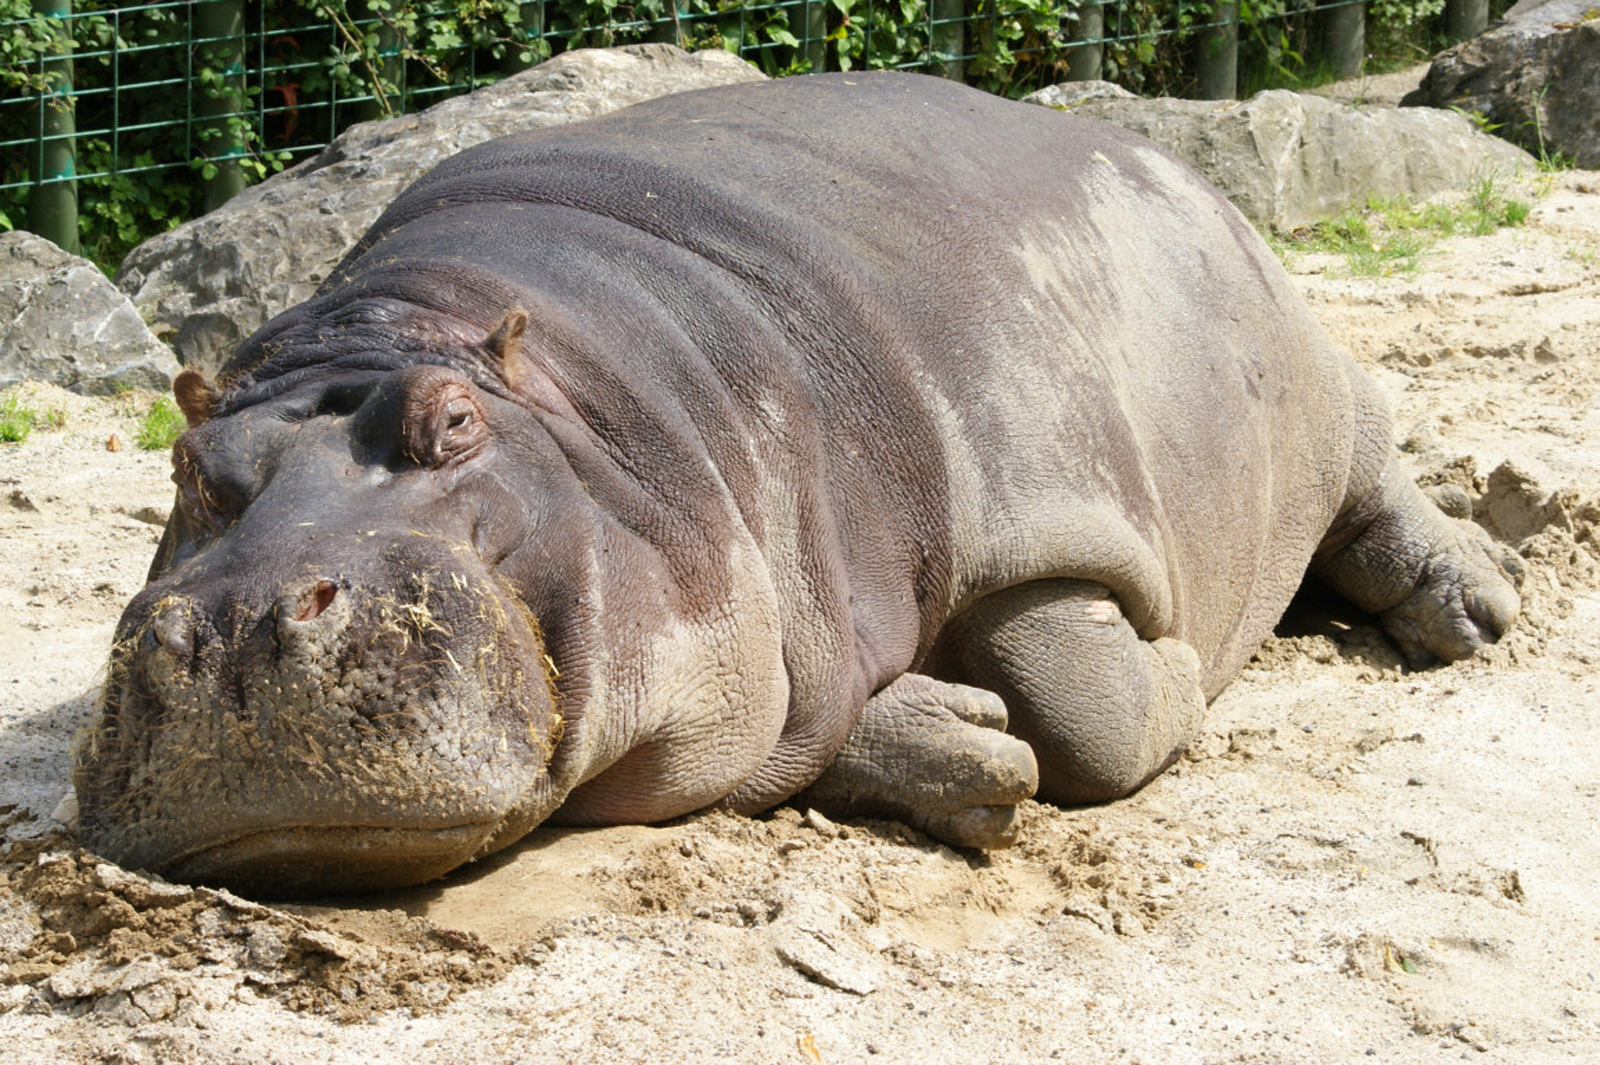 Hippo Wallpaper by Betty Cockerham, B.SCB | Animals 100% Quality HD